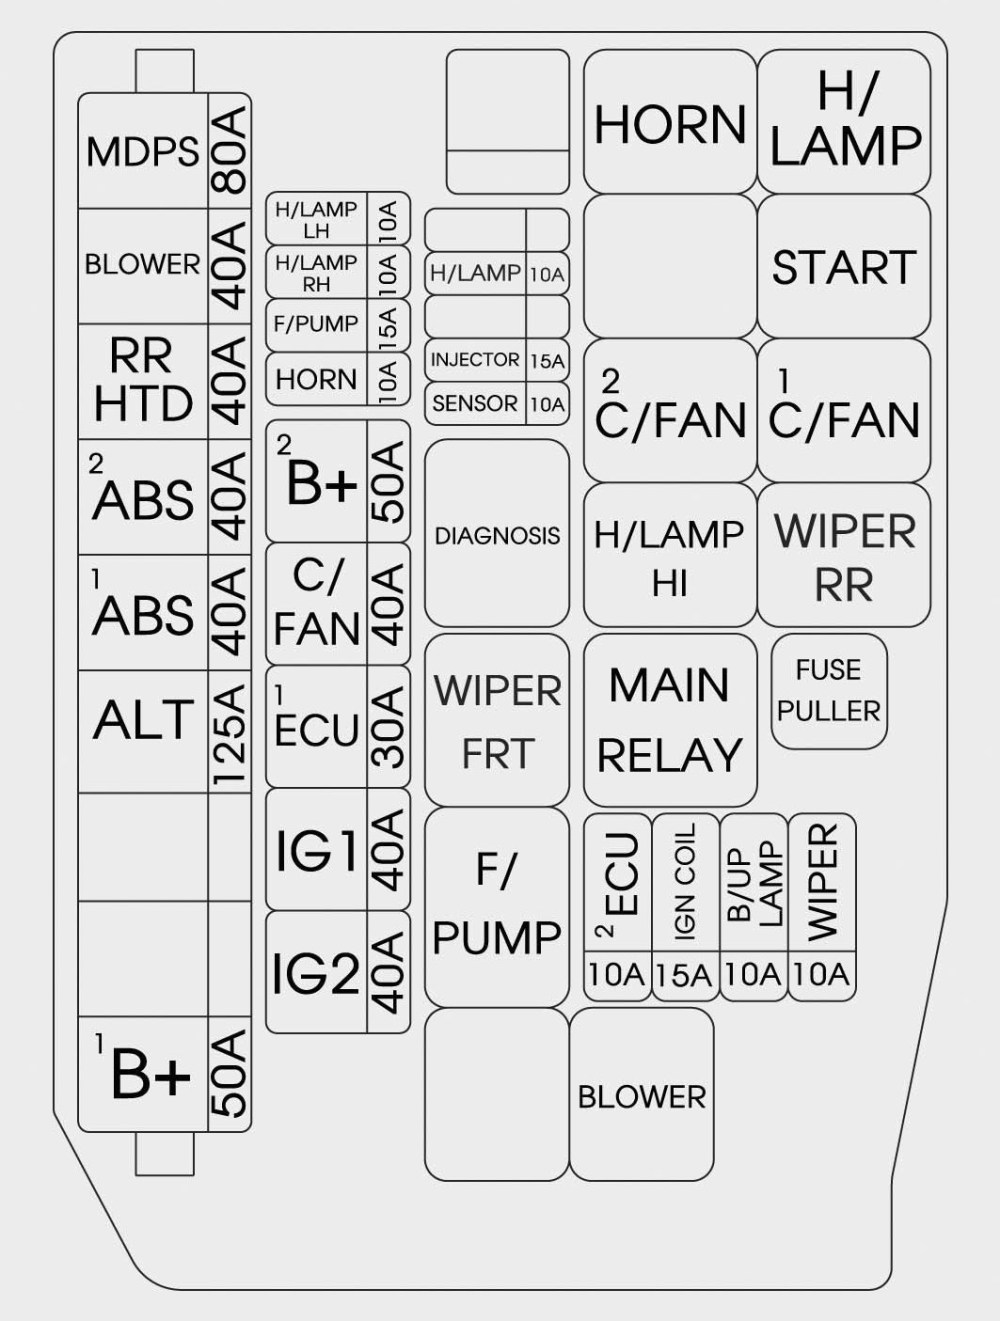 medium resolution of 2014 elantra fuse diagram wiring diagram name 2014 hyundai santa fe sport fuse box diagram 2014